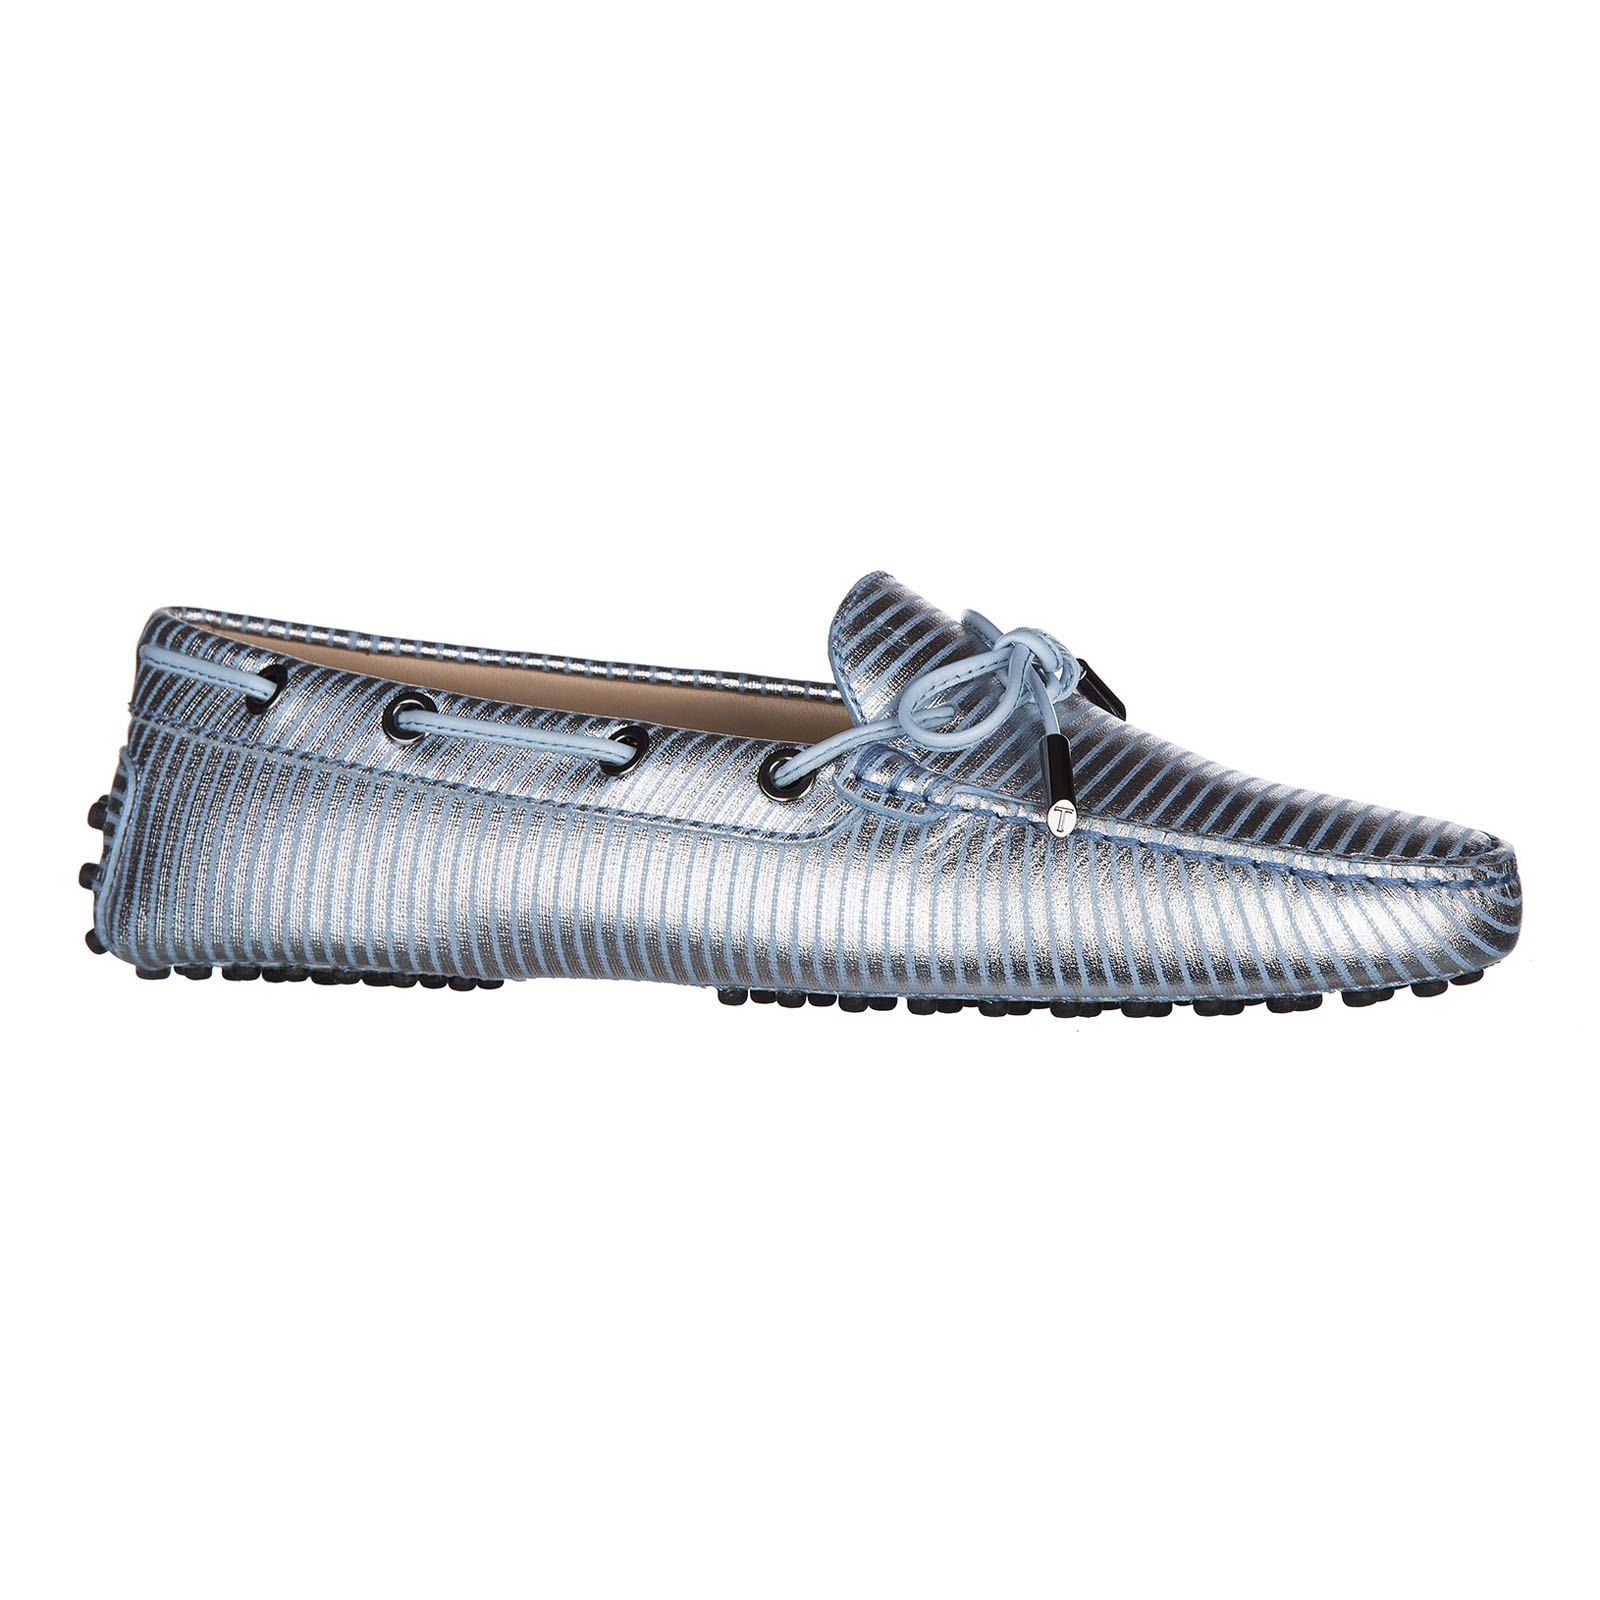 Women's leather loafers moccasins  heaven laccetto